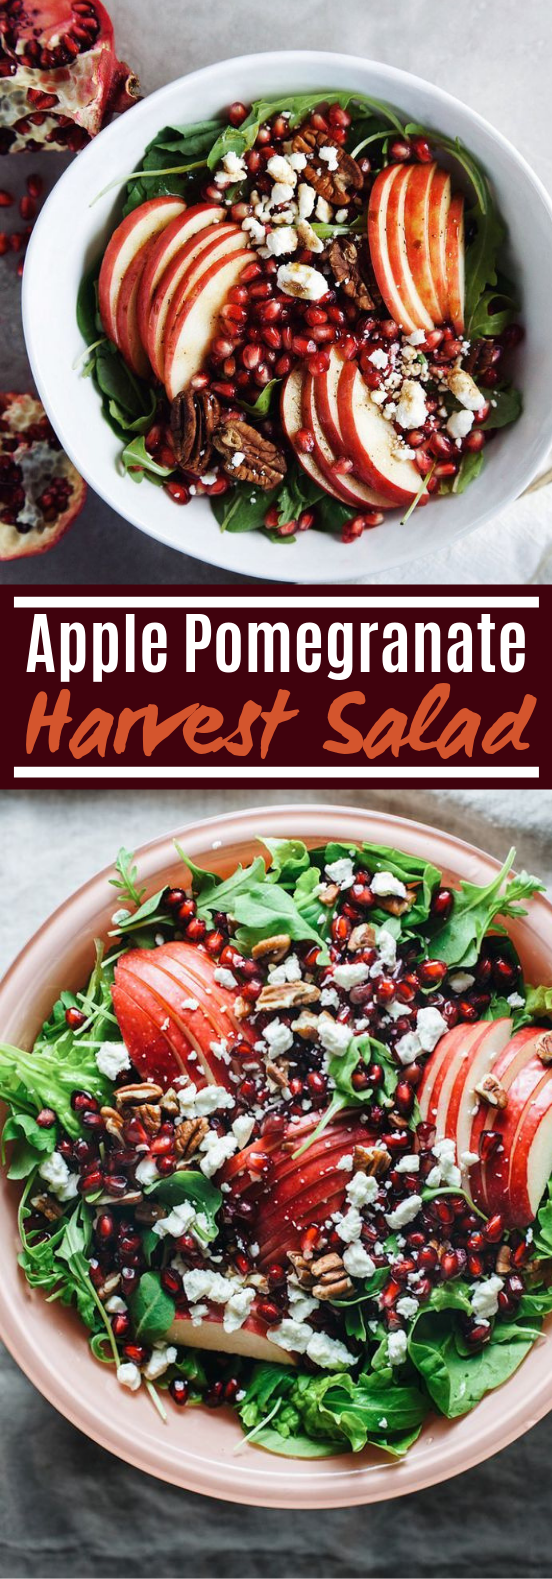 Apple Pomegranate Harvest Salad #healthy #salad